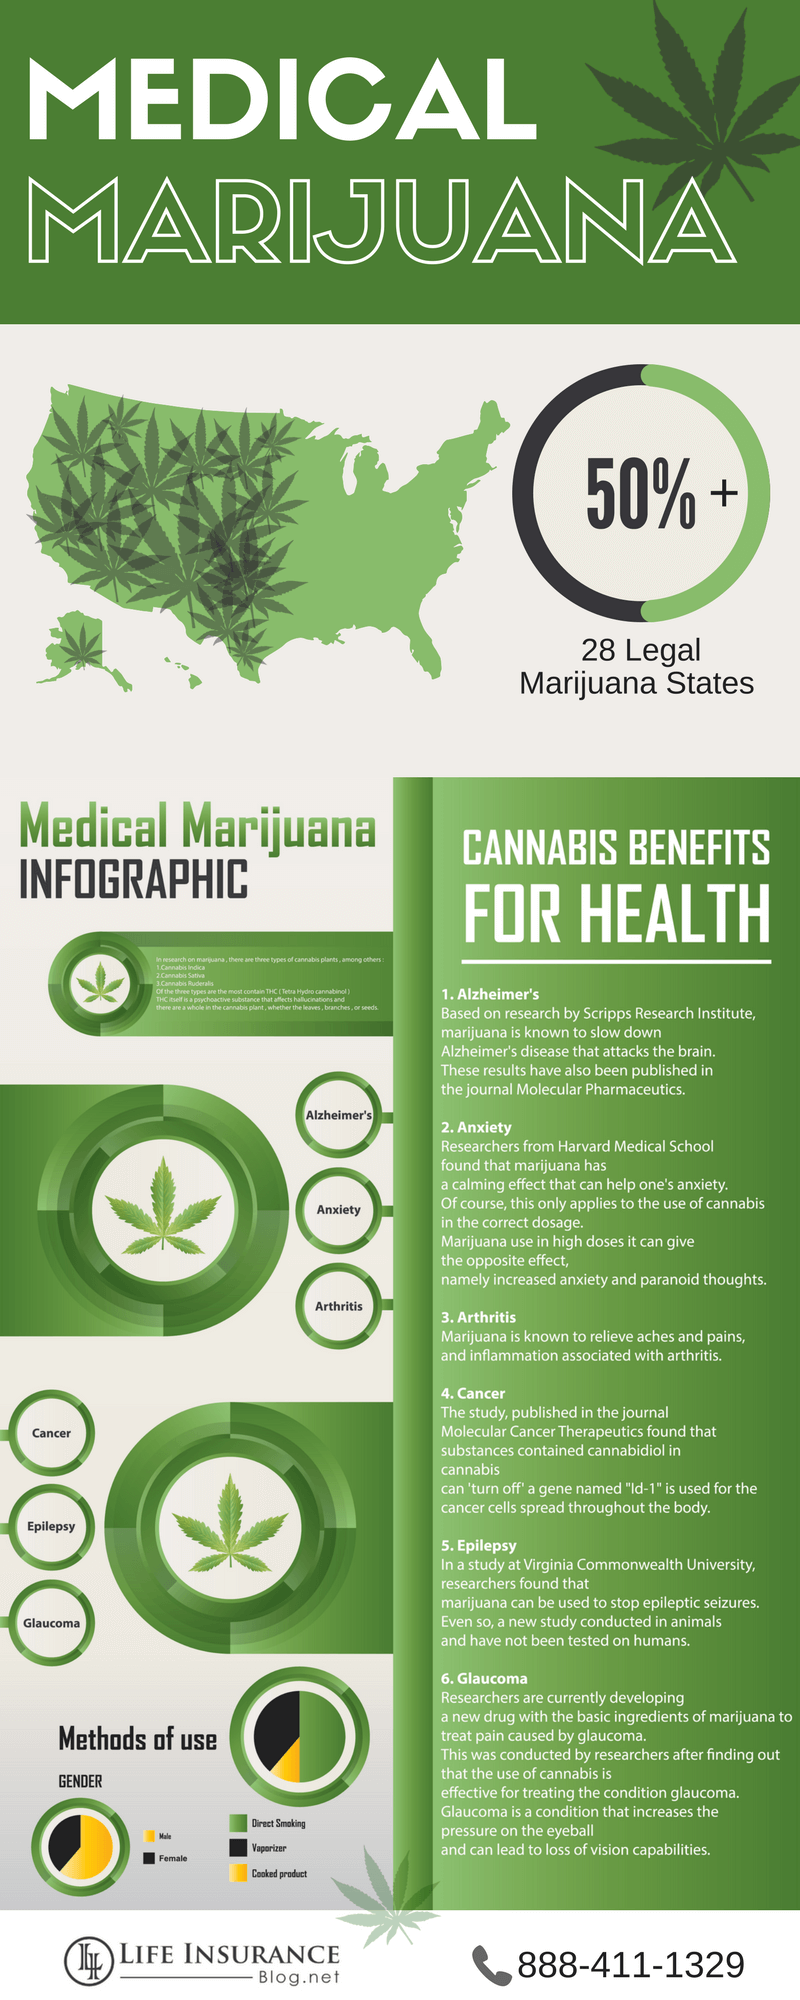 life insurance with medical marijuana use